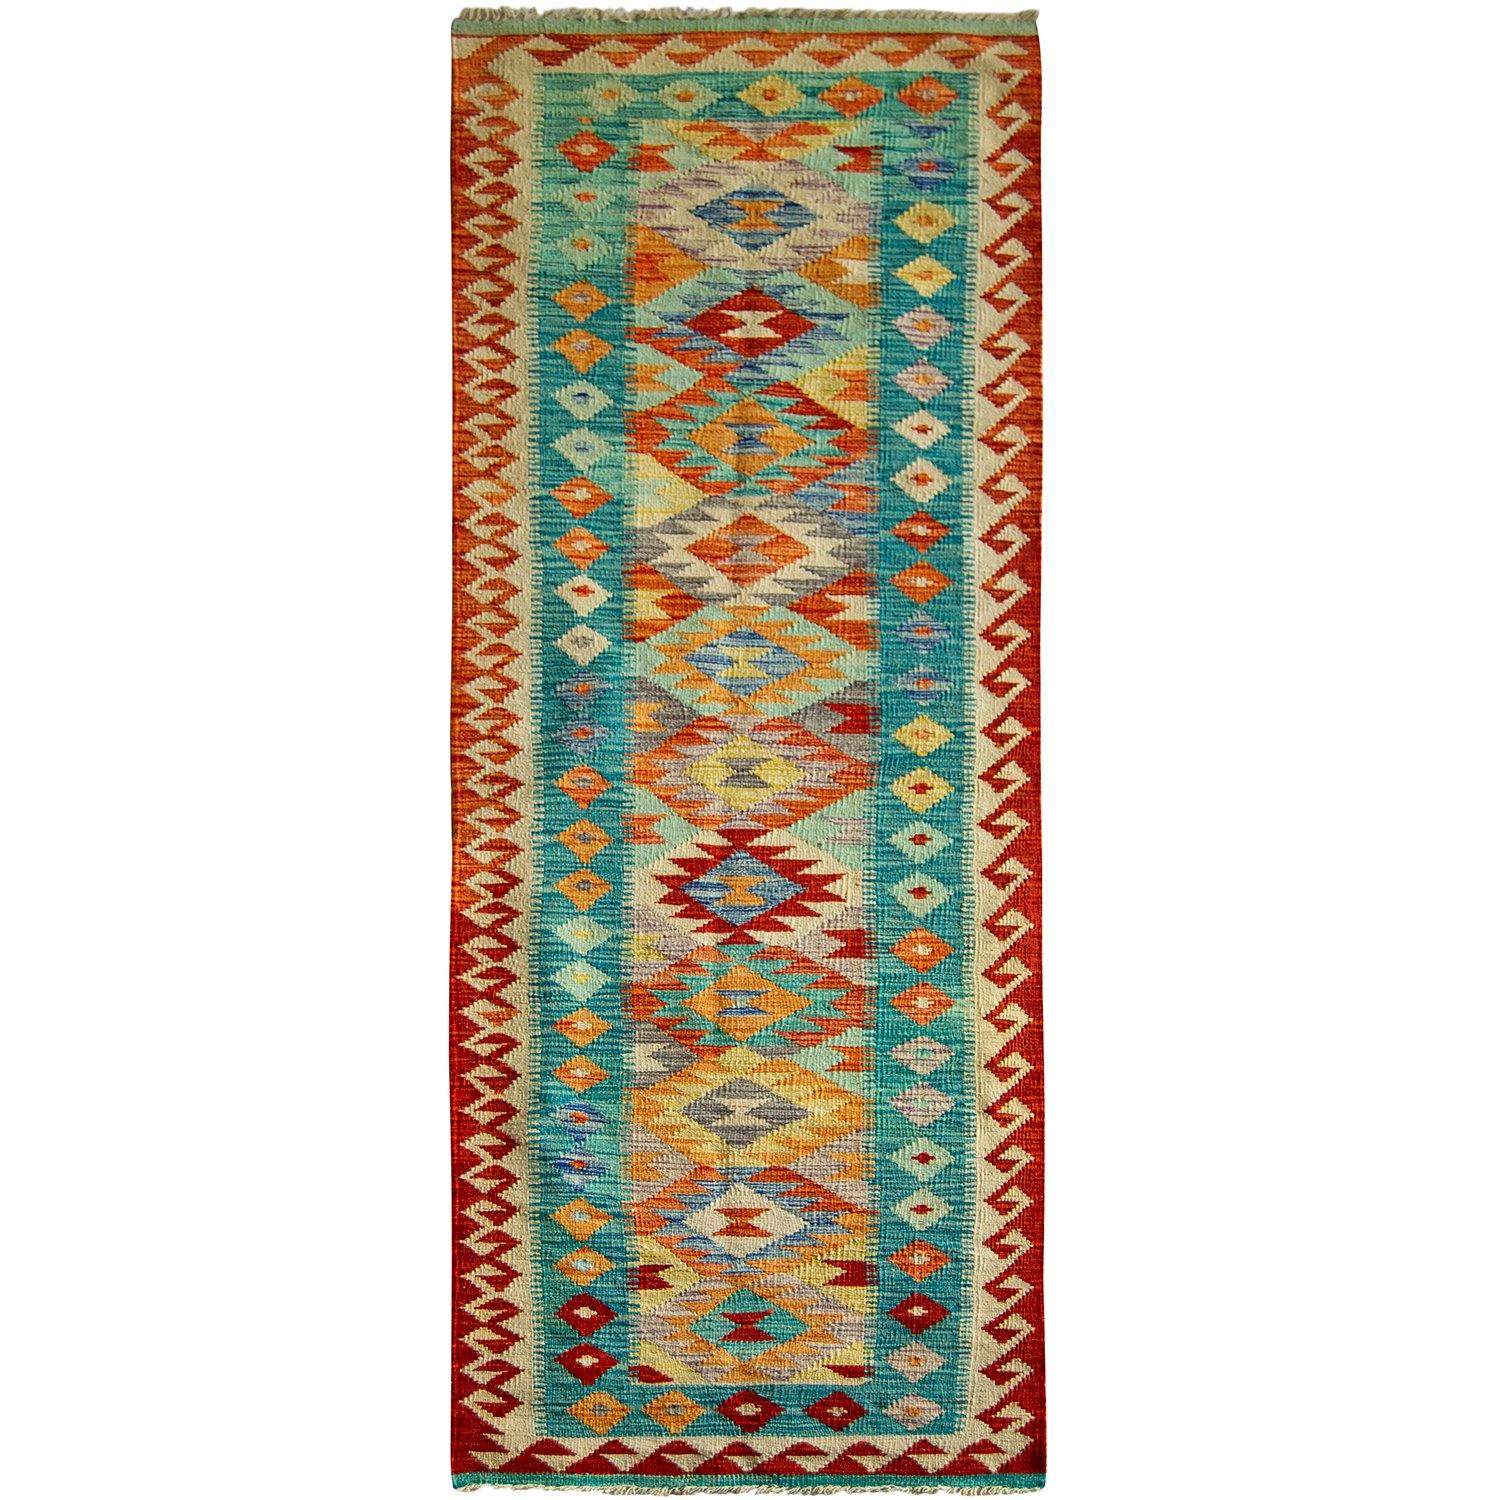 Hand-woven Wool Kilim Runner 81cm x 290cm Persian-Rug | House-of-Haghi | NewMarket | Auckland | NZ | Handmade Persian Rugs | Hand Knotted Persian Rugs